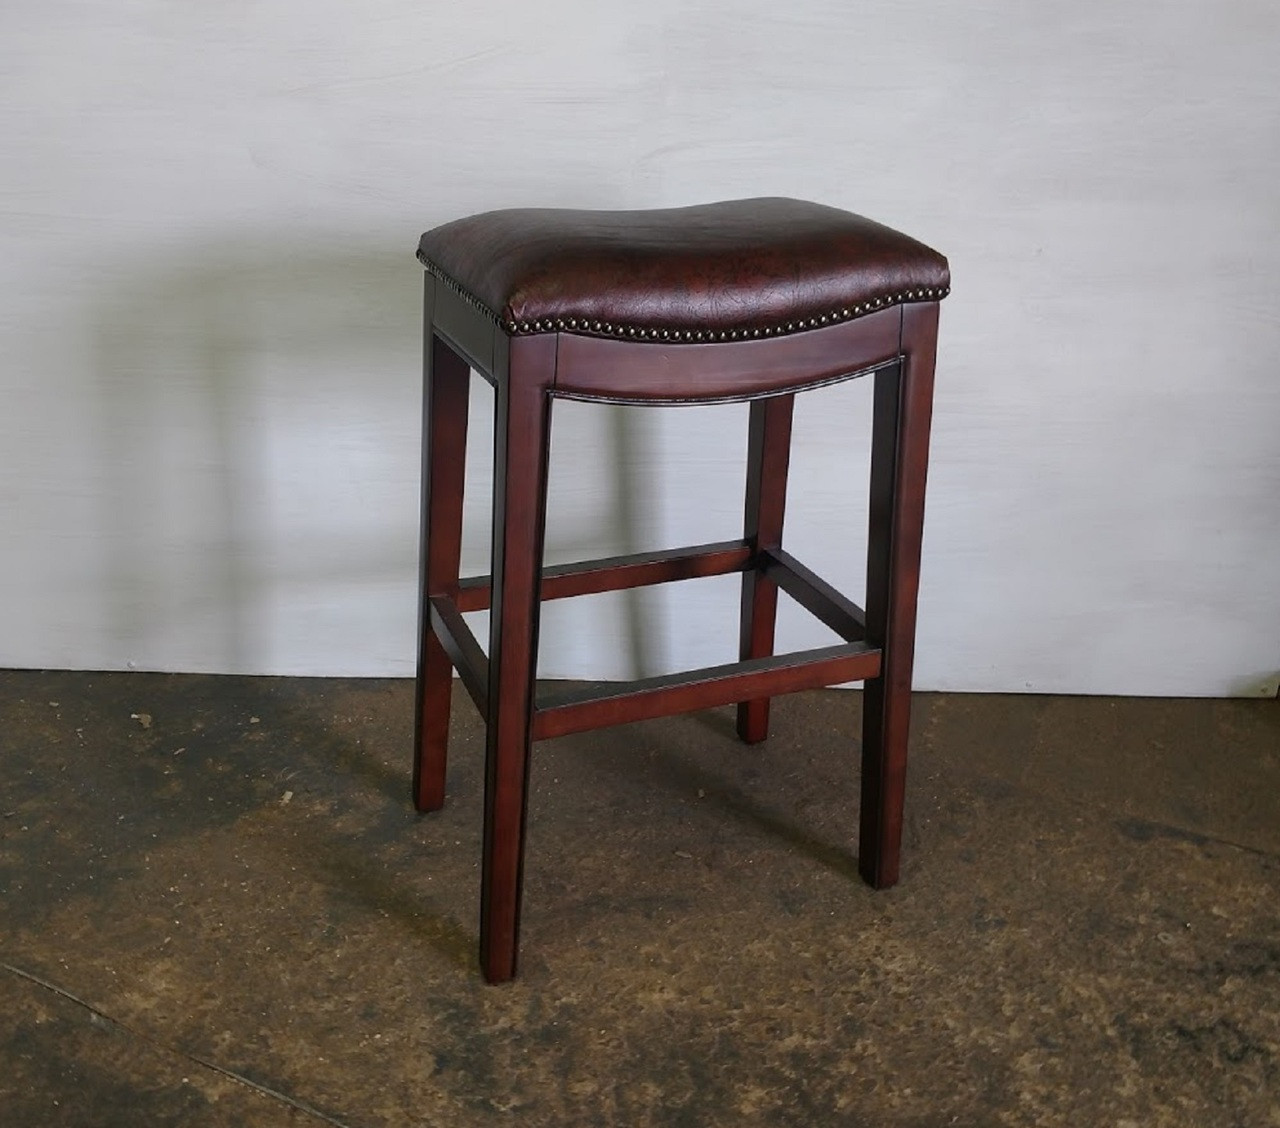 Remarkable Xs Upholstery Embossed Leather Counter Stools Set Of 3 Squirreltailoven Fun Painted Chair Ideas Images Squirreltailovenorg